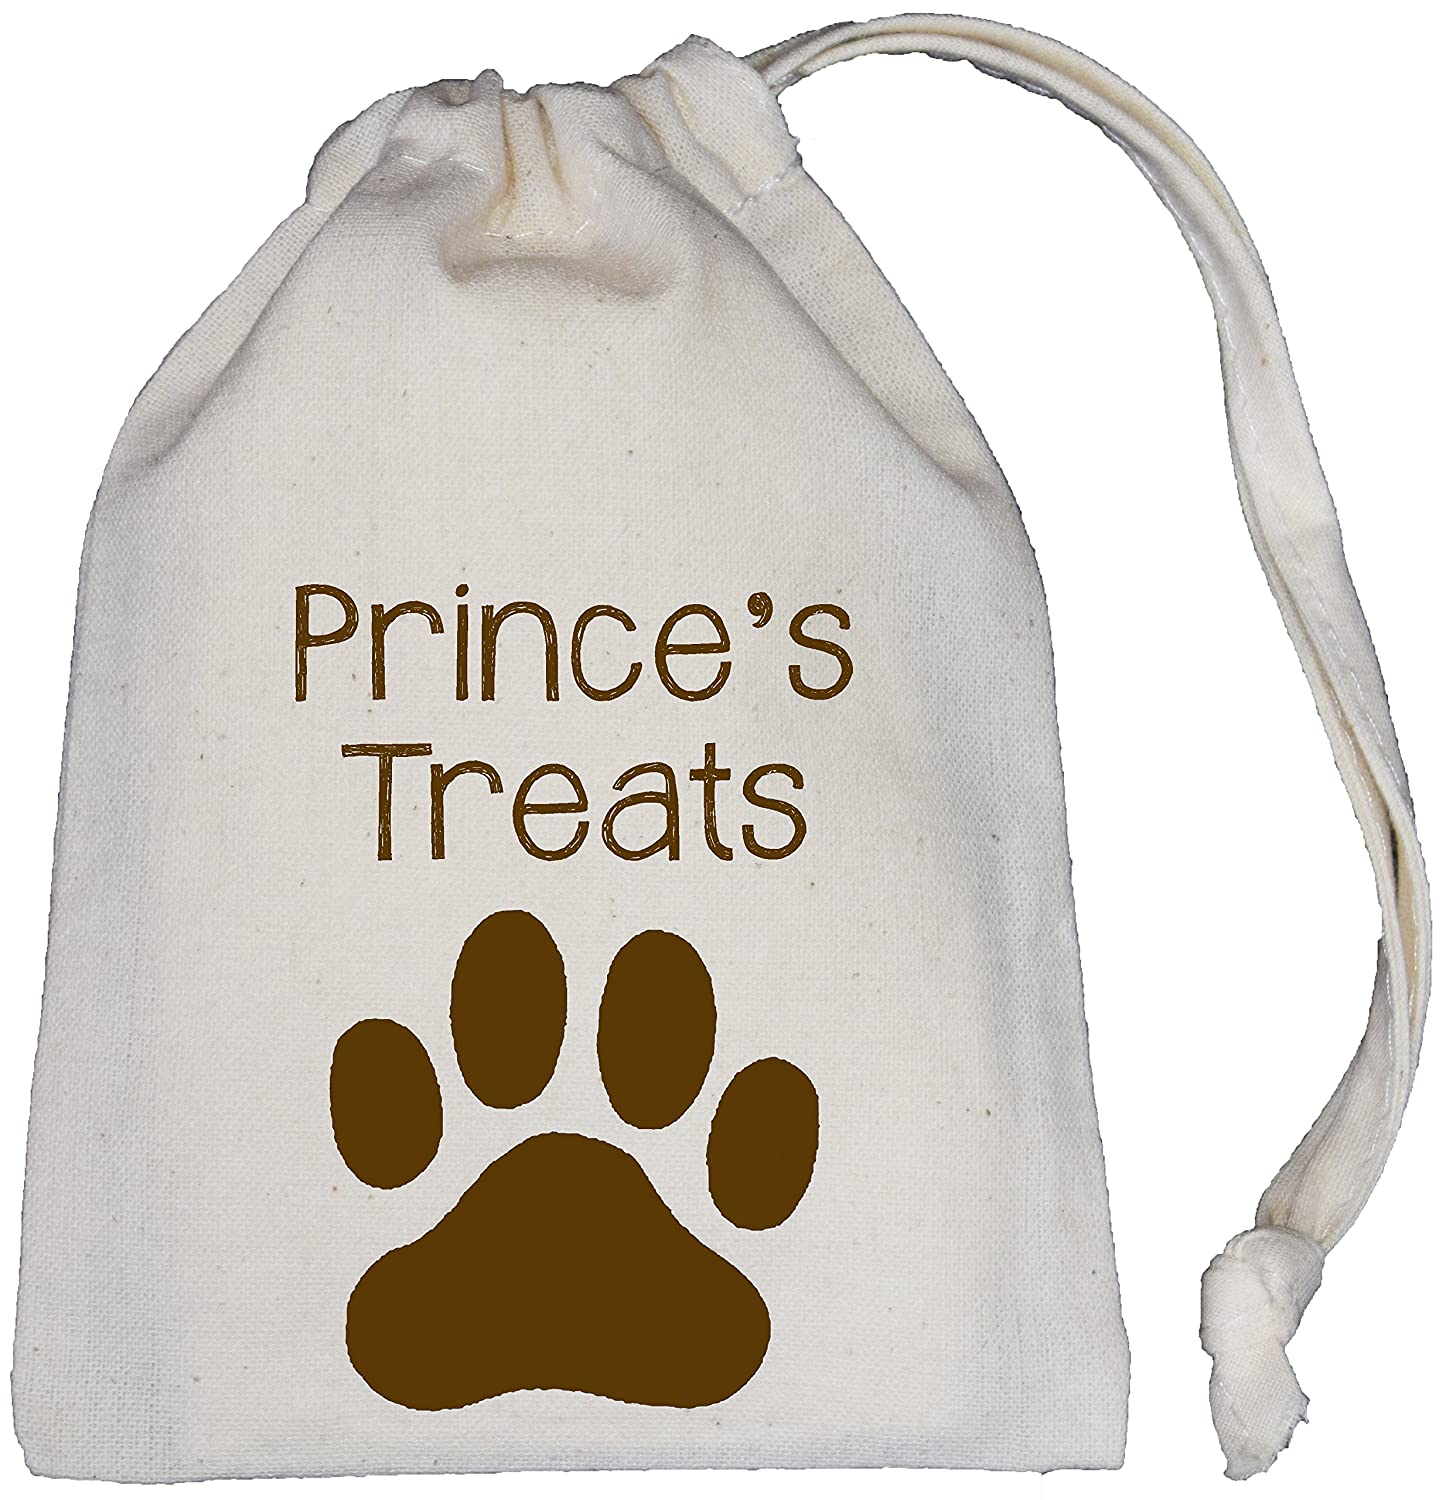 Personalised Dog Treat Bag - Natural (Cream) Cotton Drawstring Bag - 3 Sizes - SUPPLIED EMPTY